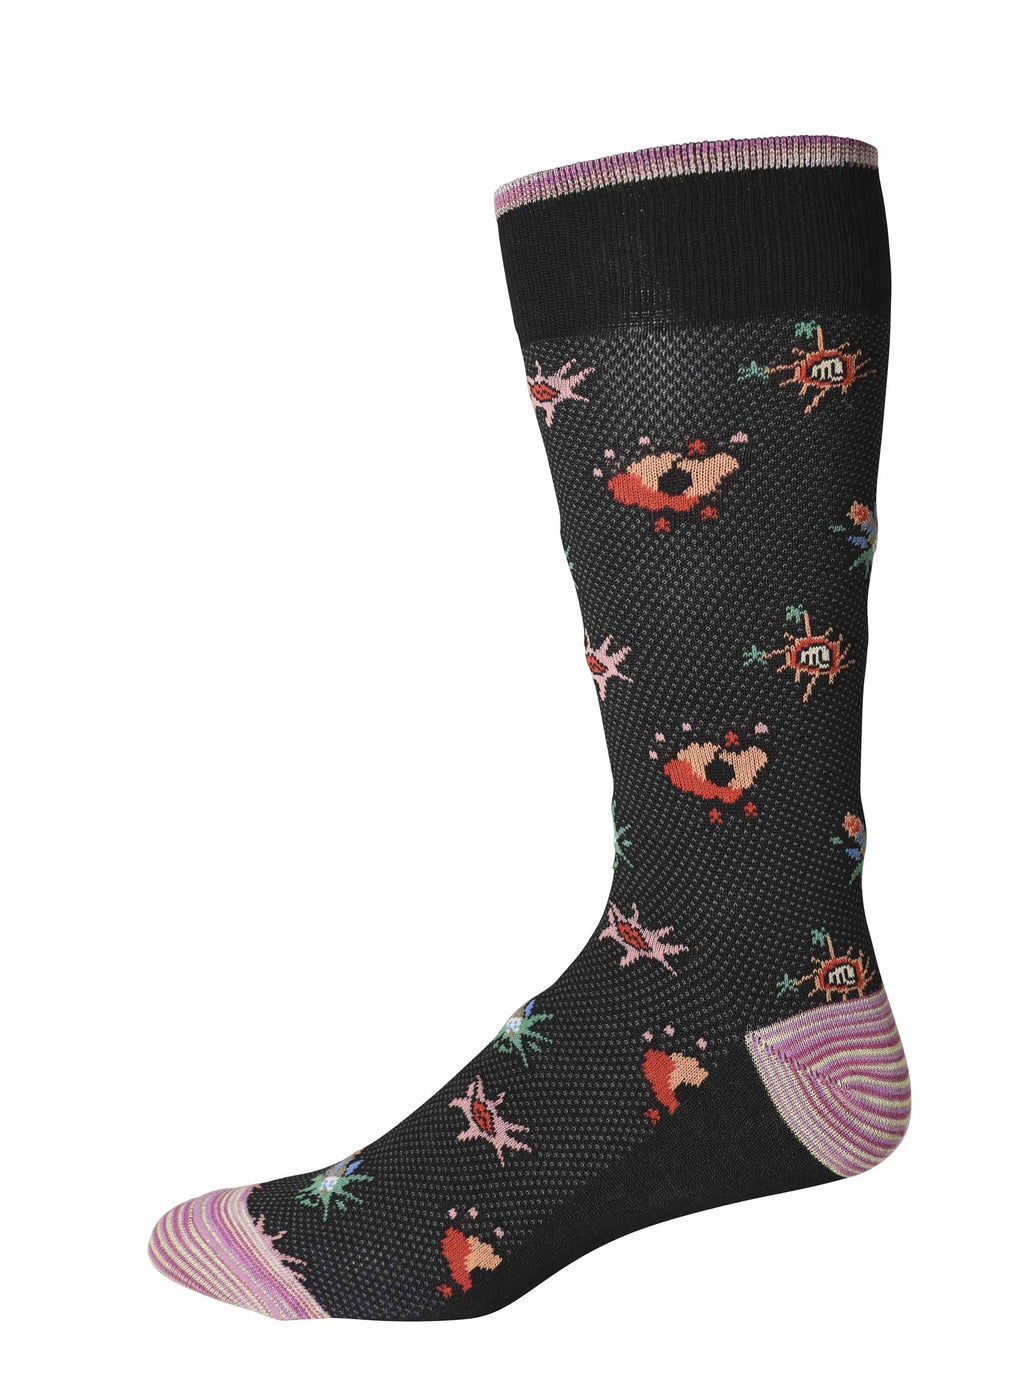 Robert Graham Socks - Pancho